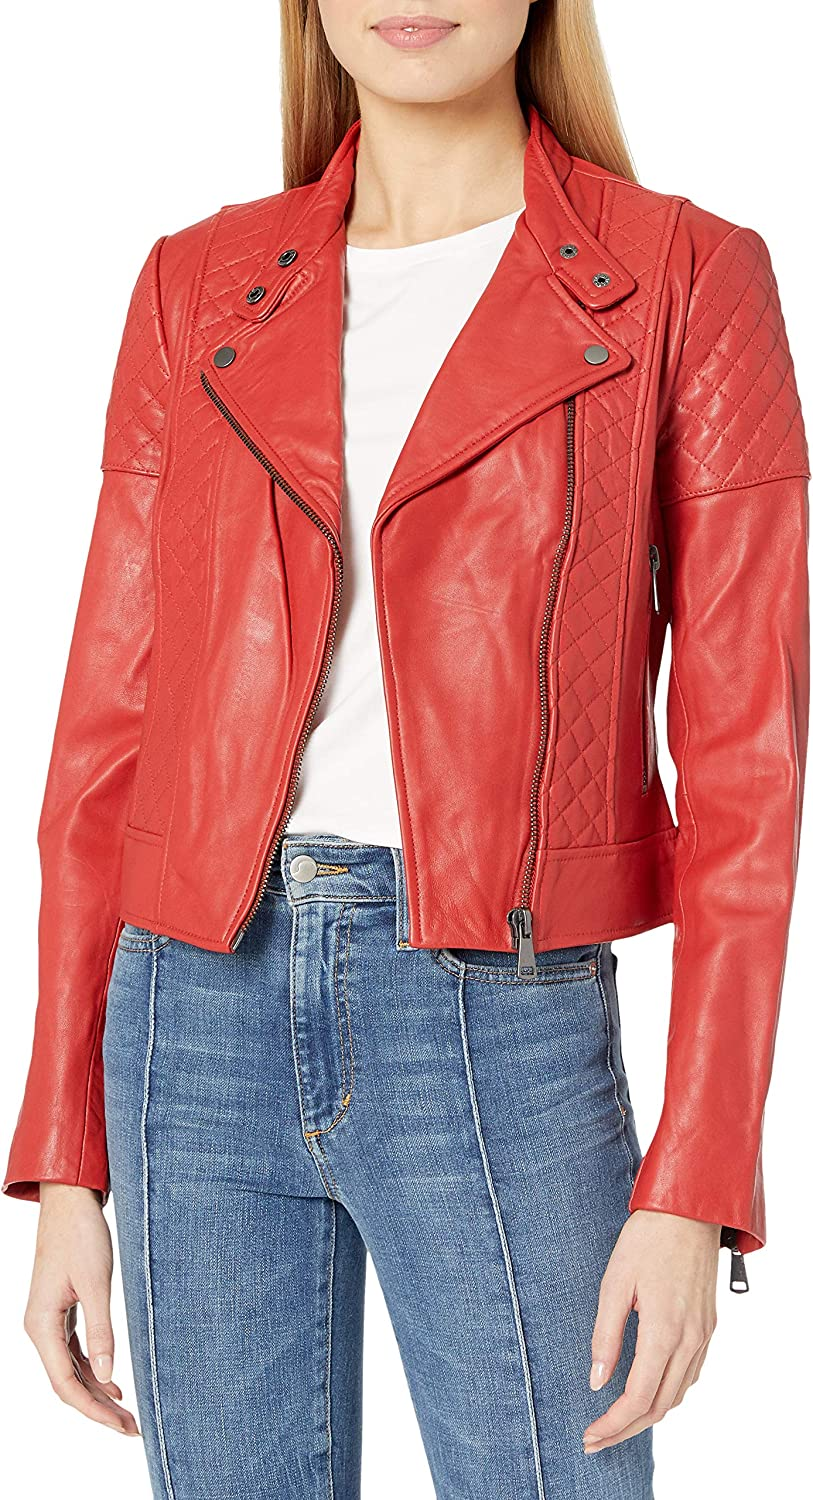 Bagatelle womens Leather Quilted Moto Jacket Leather Jacket